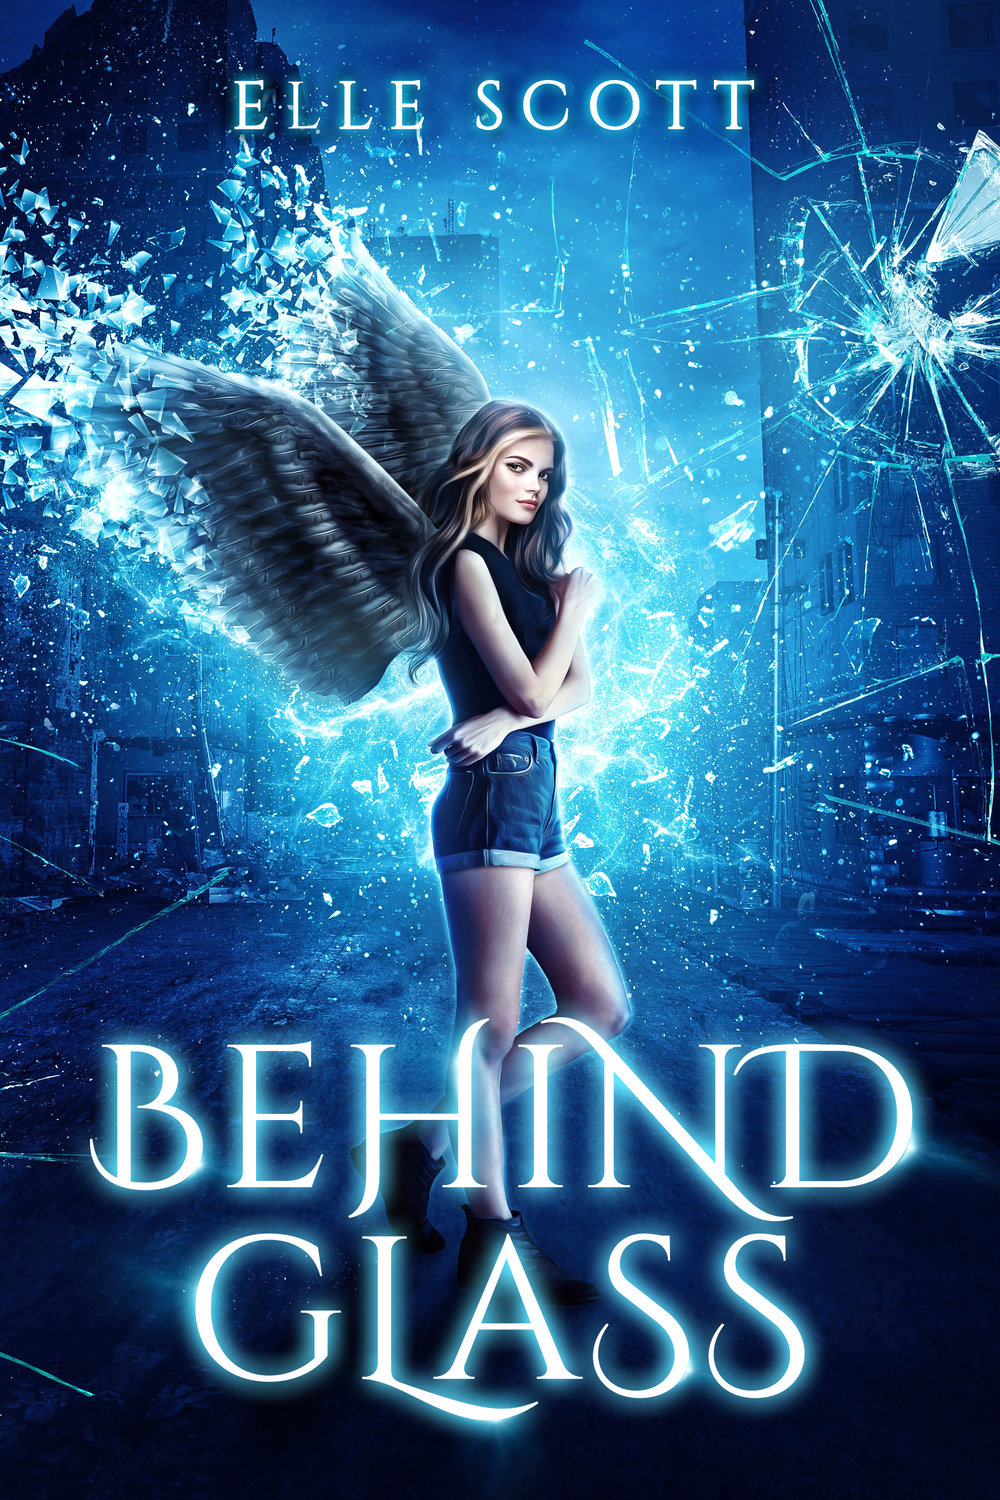 BEHIND GLASS   Elle Scott    A Nephilim with no memory of her past discovers she has telekinetic powers.  When she accidentally uses her new ability in public she becomes the number one target for demons who hunt angels for their grace.